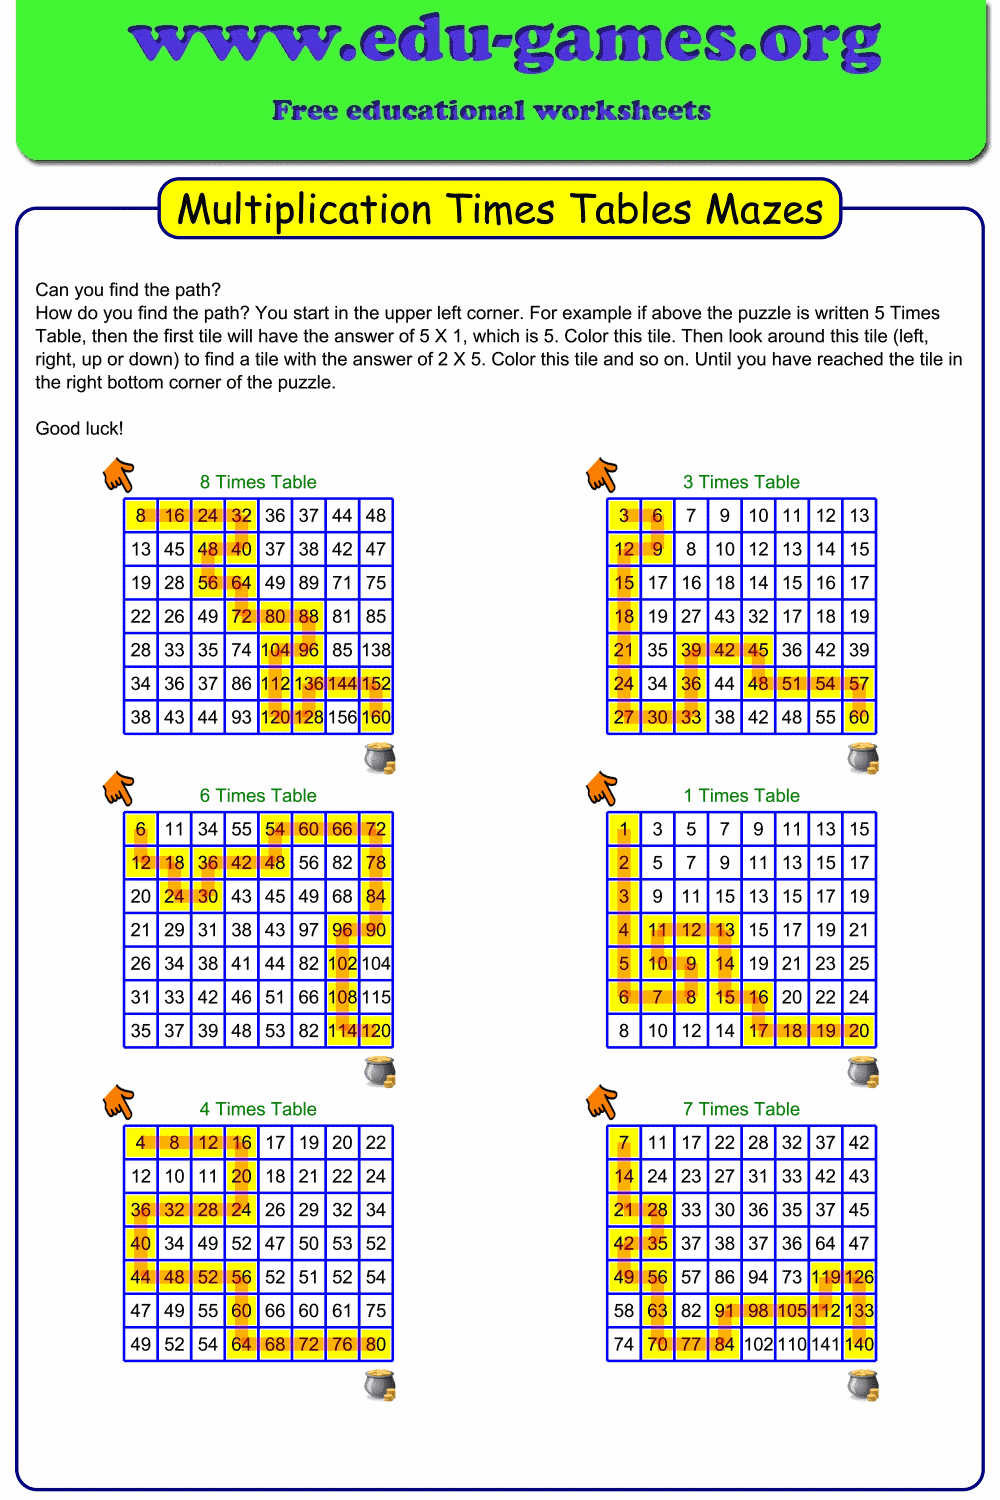 Multiplication Times Table Mazes Are A Great Way To Practice The Multiplications Tables Instead Of Lea Multiplication Times Tables Times Tables Multiplication